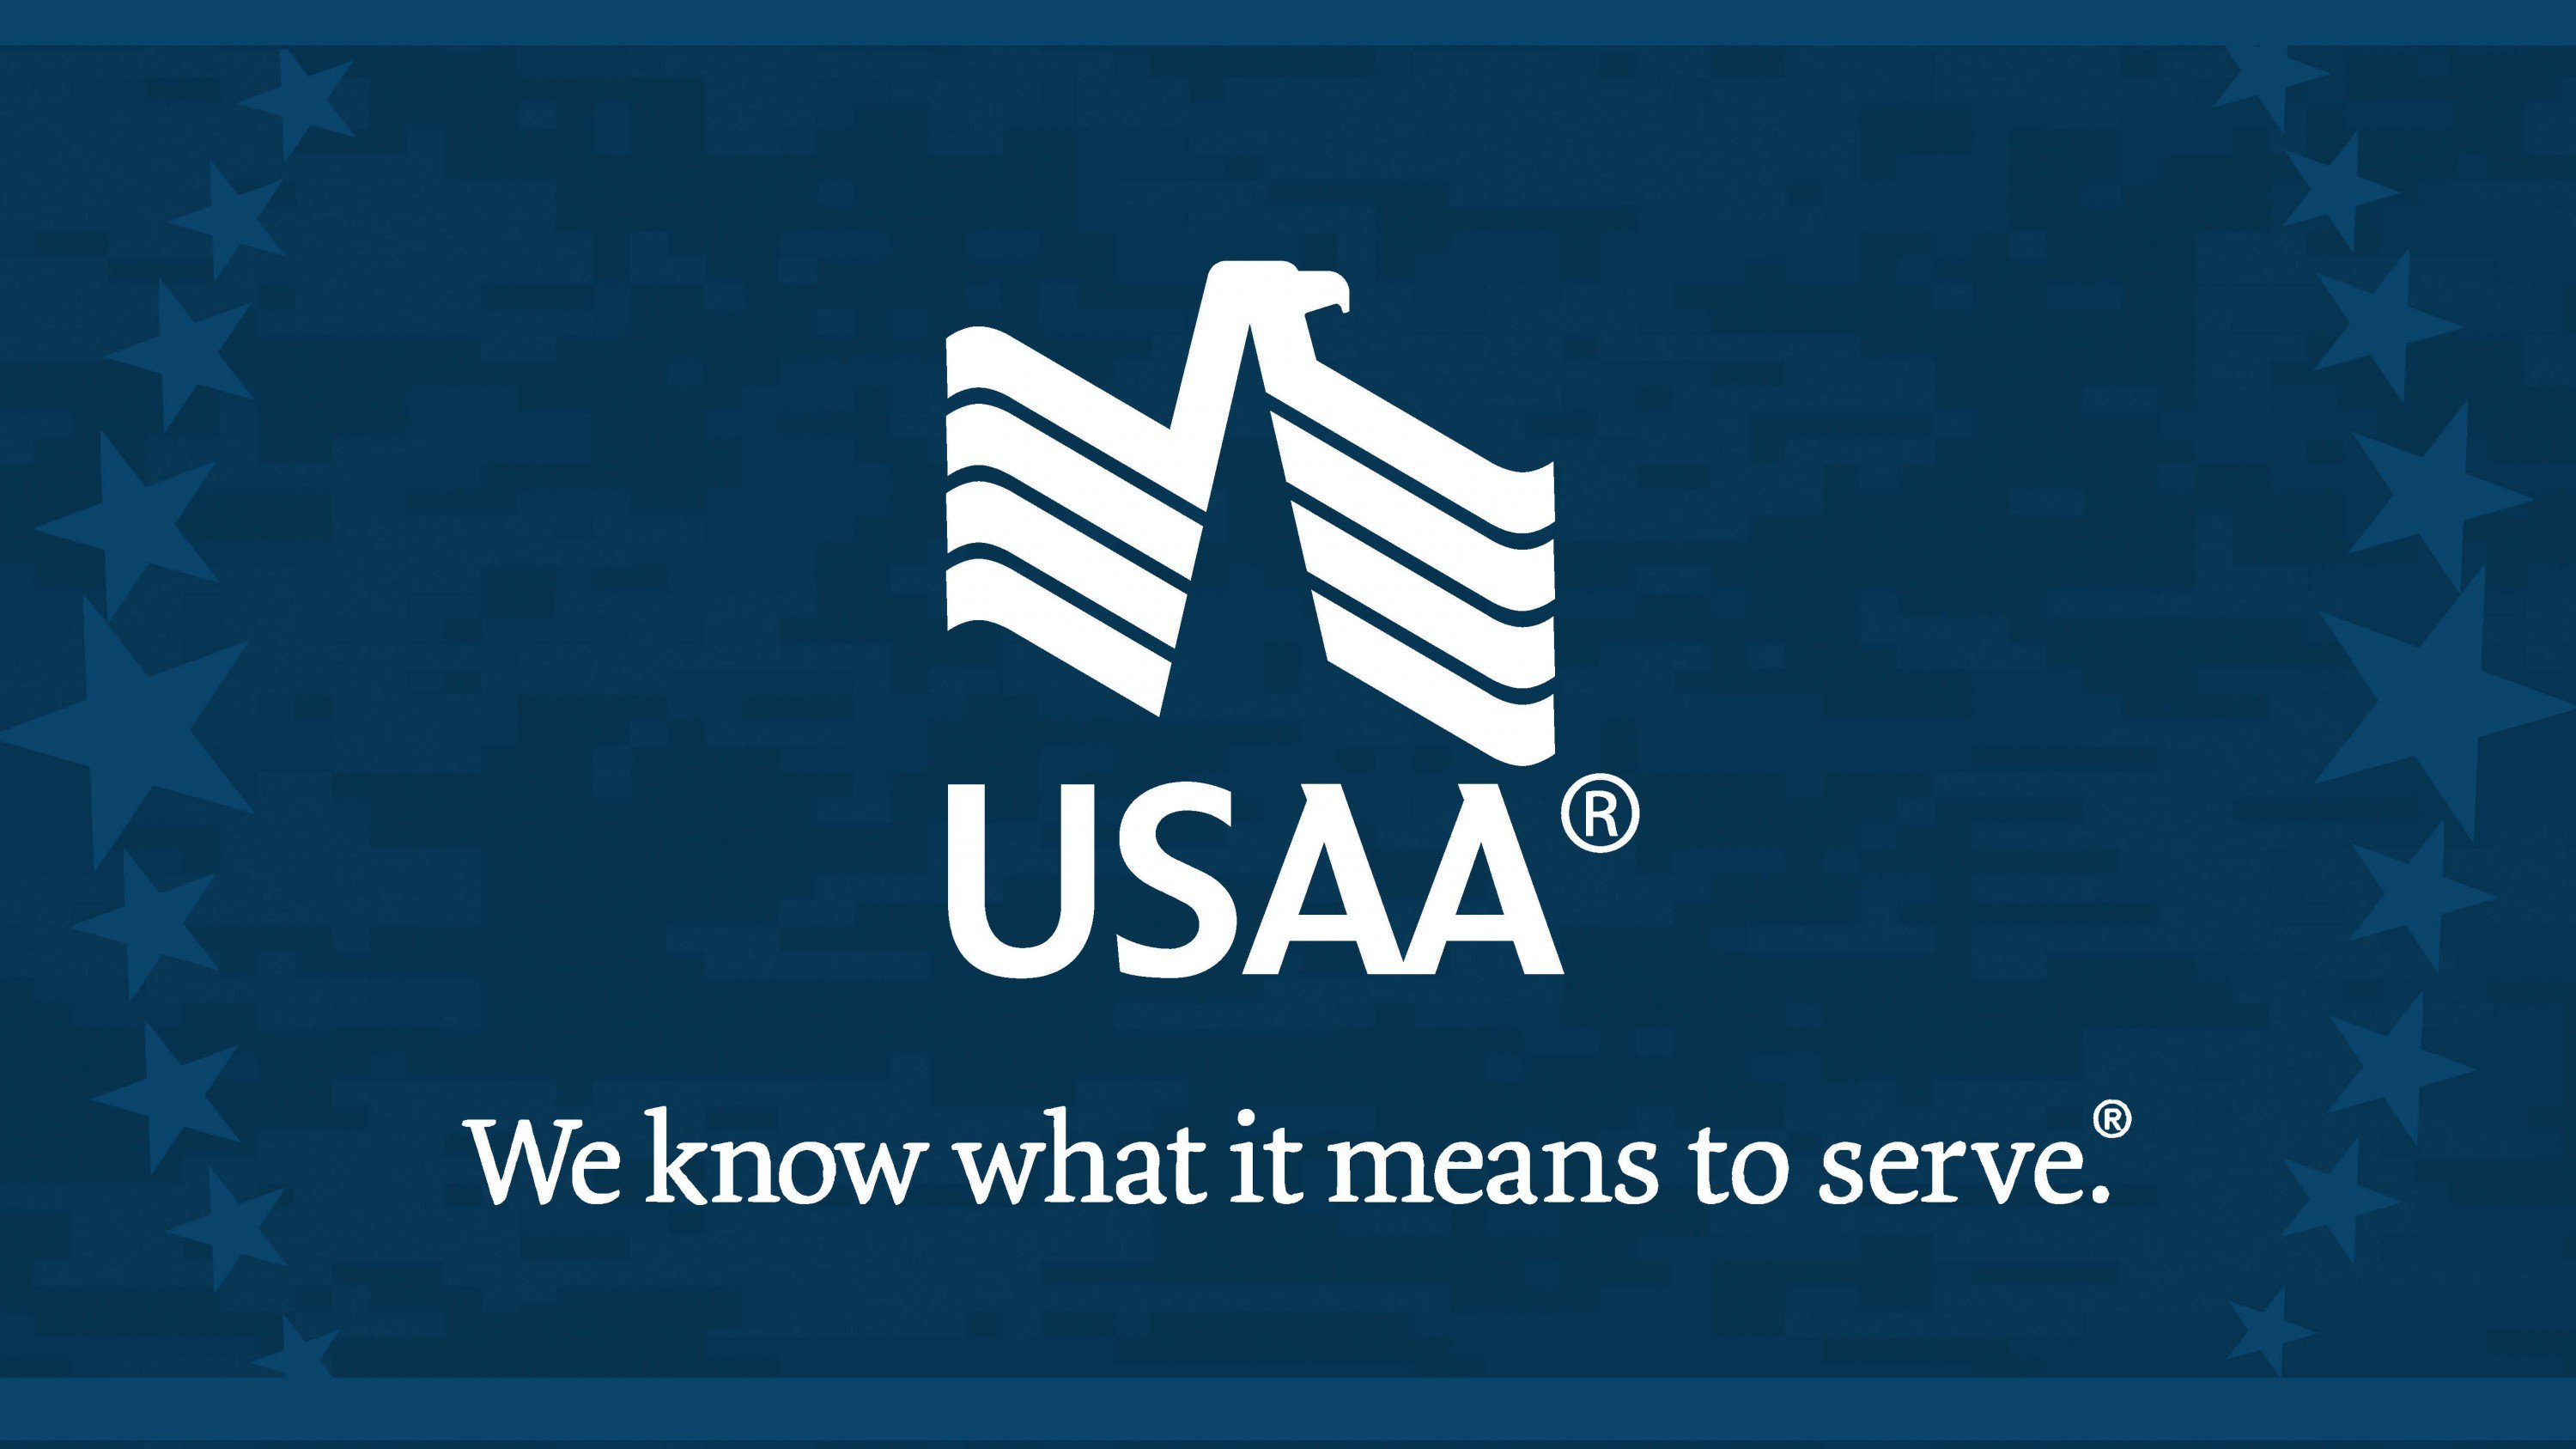 USAA Comes Under Fire After Dropping Its Ads From Fox News ...